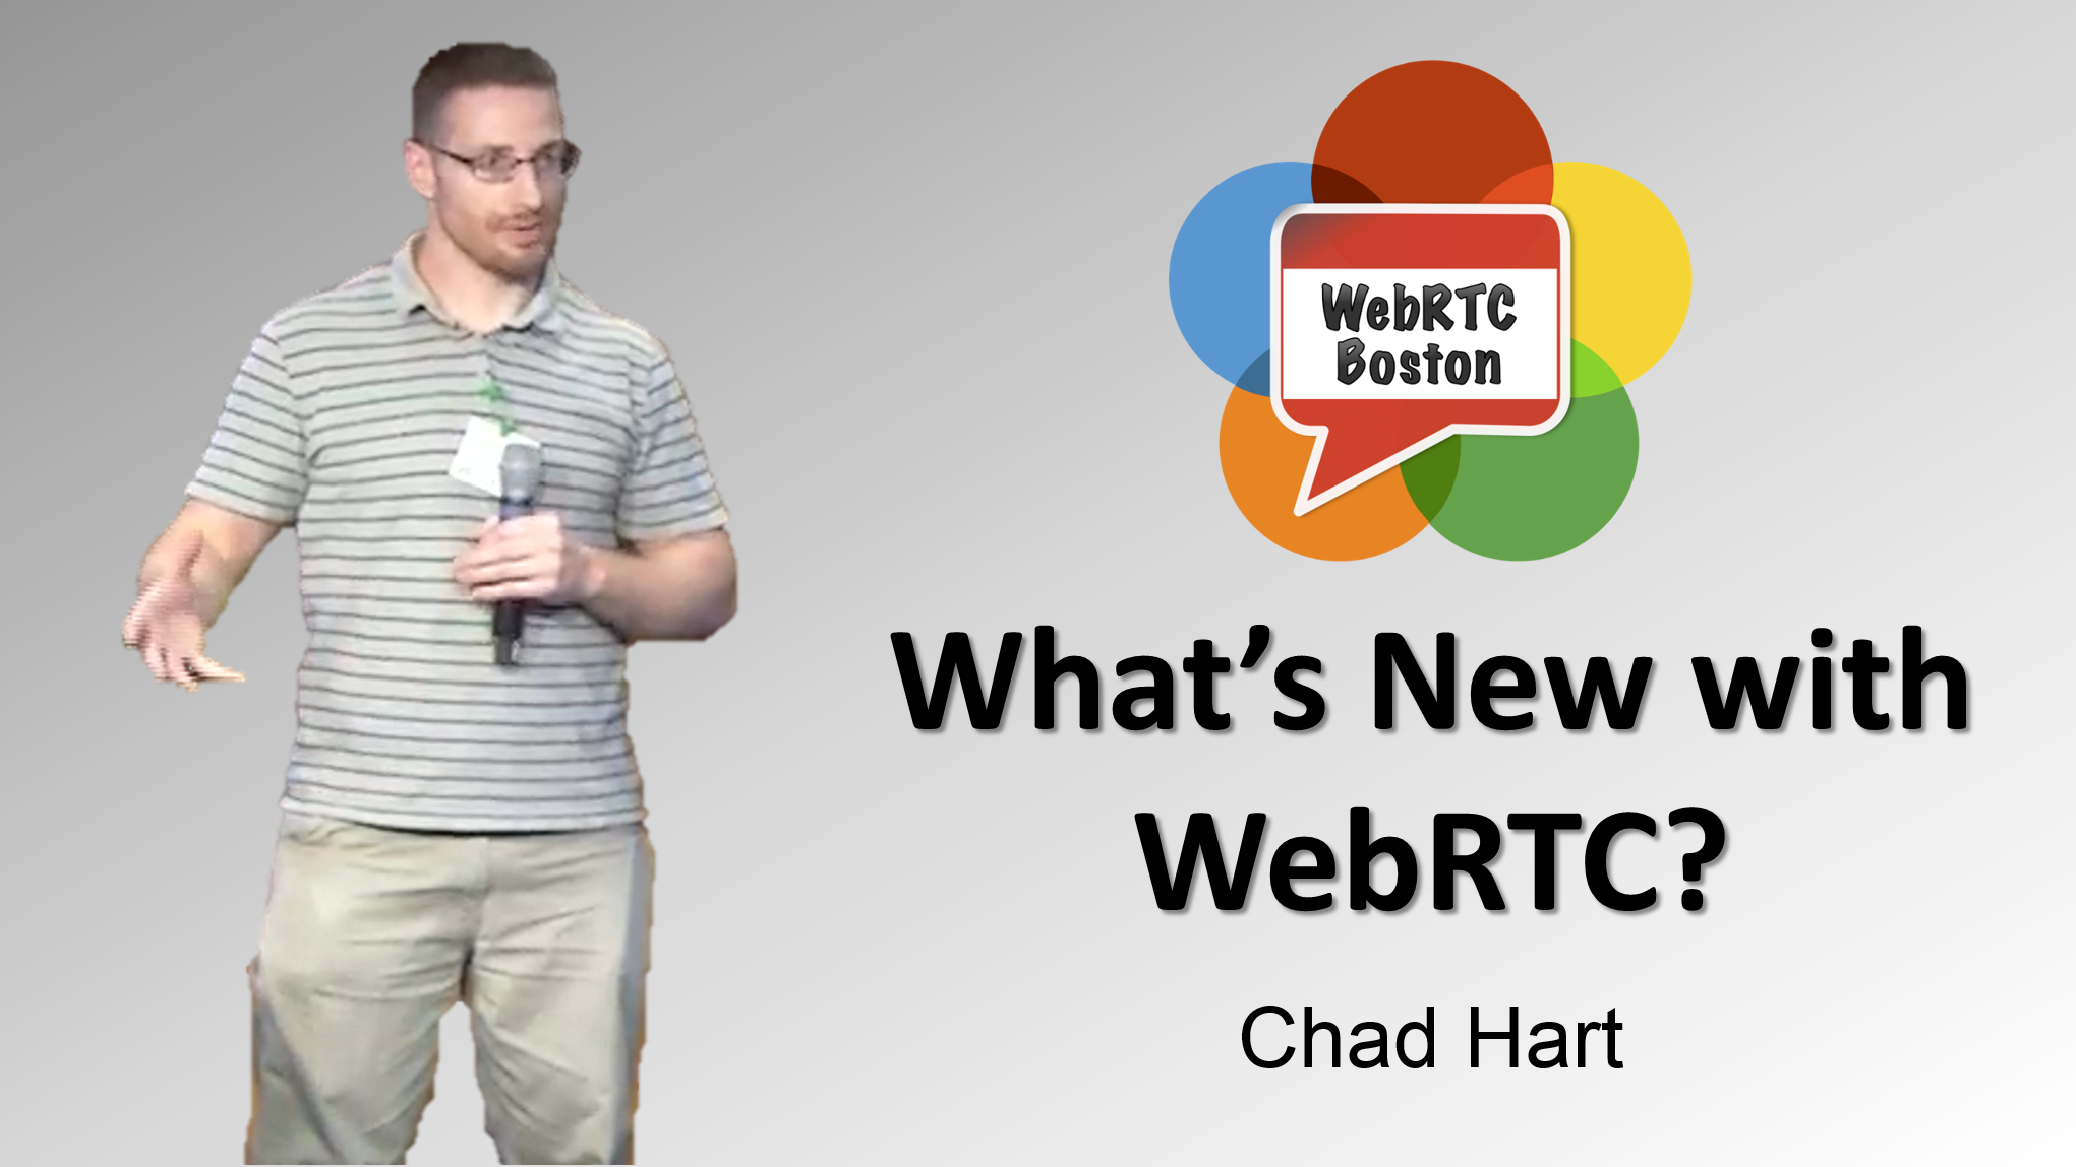 WebRTc Boston #2 - What's New with WebRTC